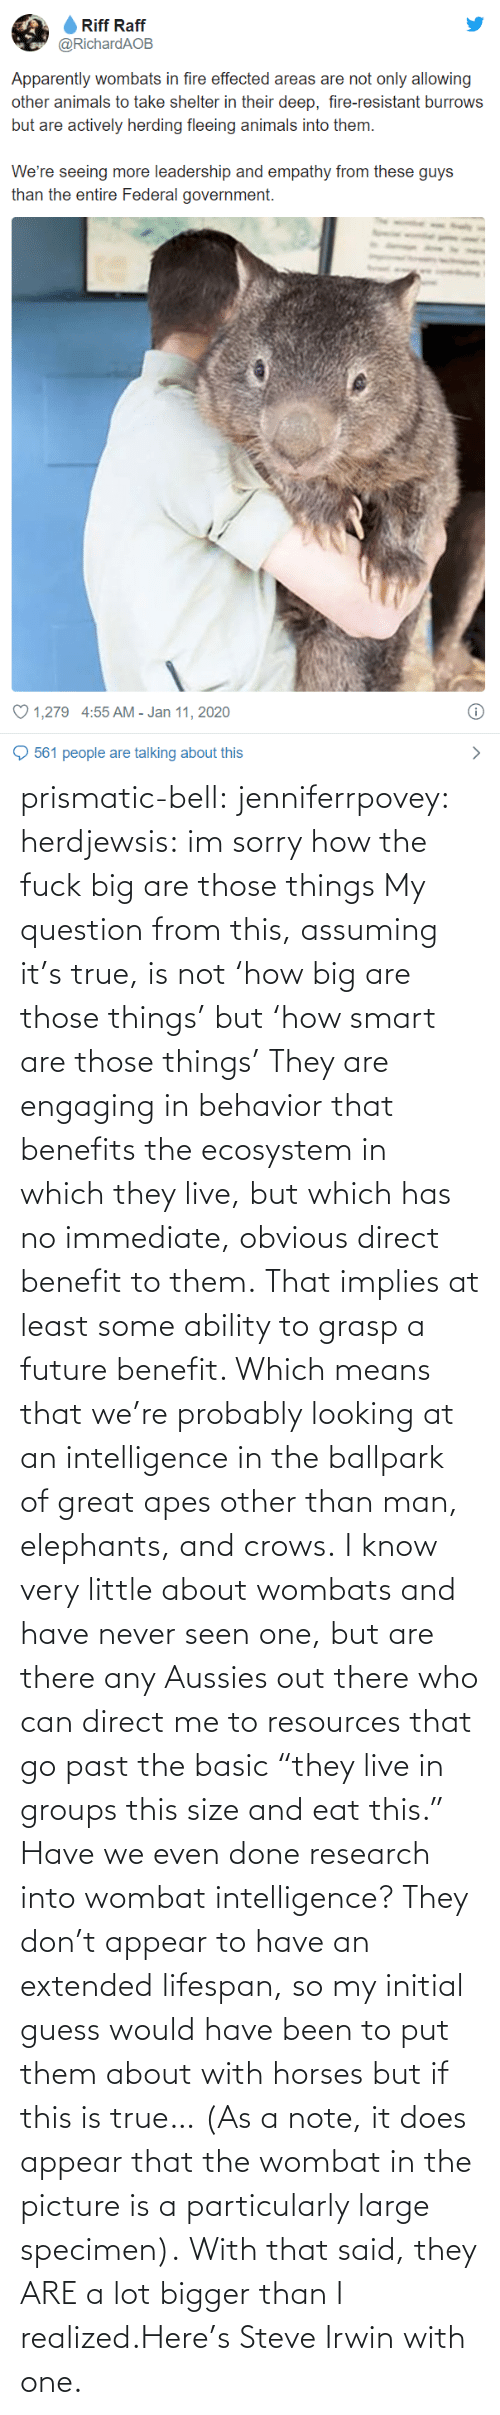 "Have An: prismatic-bell:  jenniferrpovey: herdjewsis: im sorry how the fuck big are those things My question from this, assuming it's true, is not 'how big are those things' but 'how smart are those things' They are engaging in behavior that benefits the ecosystem in which they live, but which has no immediate, obvious direct benefit to them. That implies at least some ability to grasp a future benefit. Which means that we're probably looking at an intelligence in the ballpark of great apes other than man, elephants, and crows. I know very little about wombats and have never seen one, but are there any Aussies out there who can direct me to resources that go past the basic ""they live in groups this size and eat this."" Have we even done research into wombat intelligence? They don't appear to have an extended lifespan, so my initial guess would have been to put them about with horses but if this is true… (As a note, it does appear that the wombat in the picture is a particularly large specimen).  With that said, they ARE a lot bigger than I realized.Here's Steve Irwin with one."